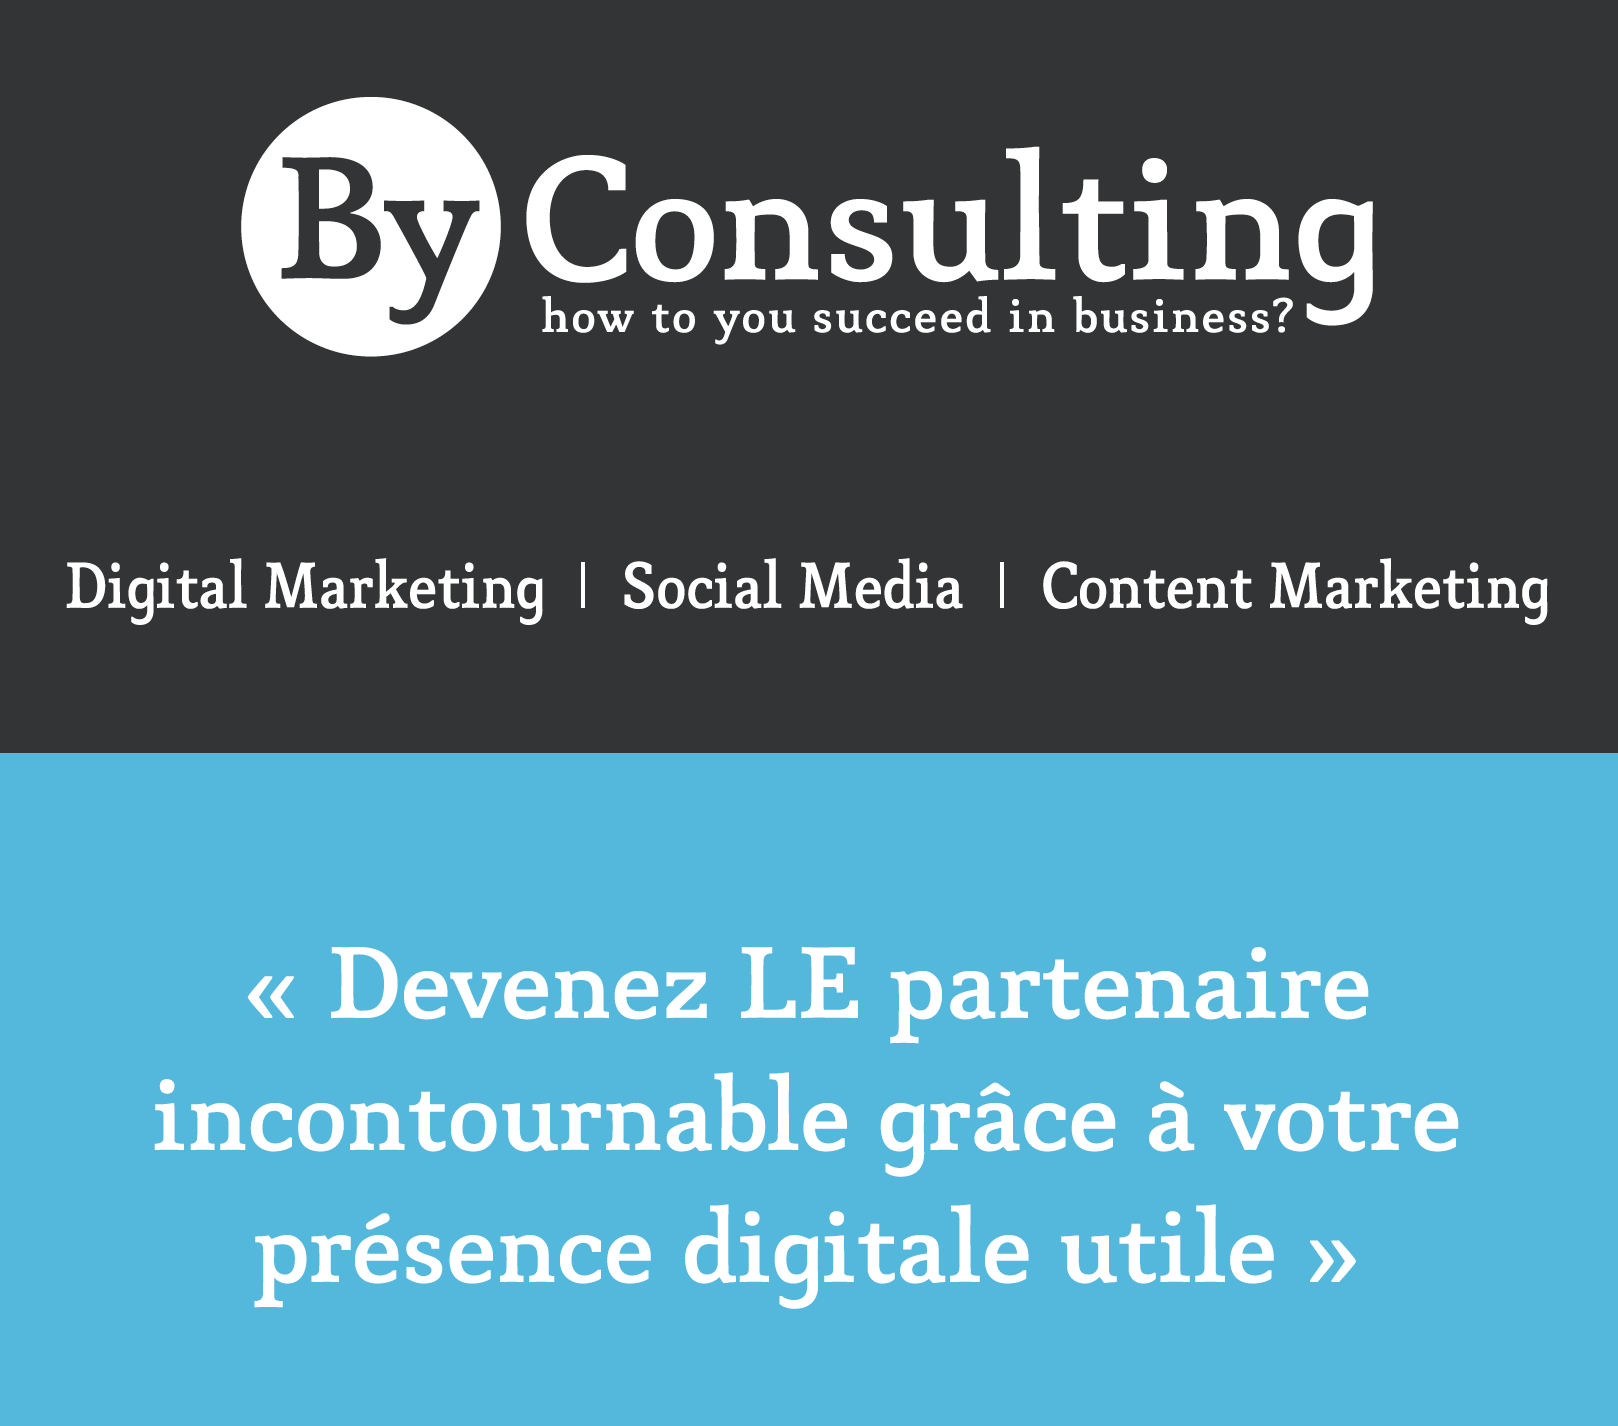 Grenoble_by consulting